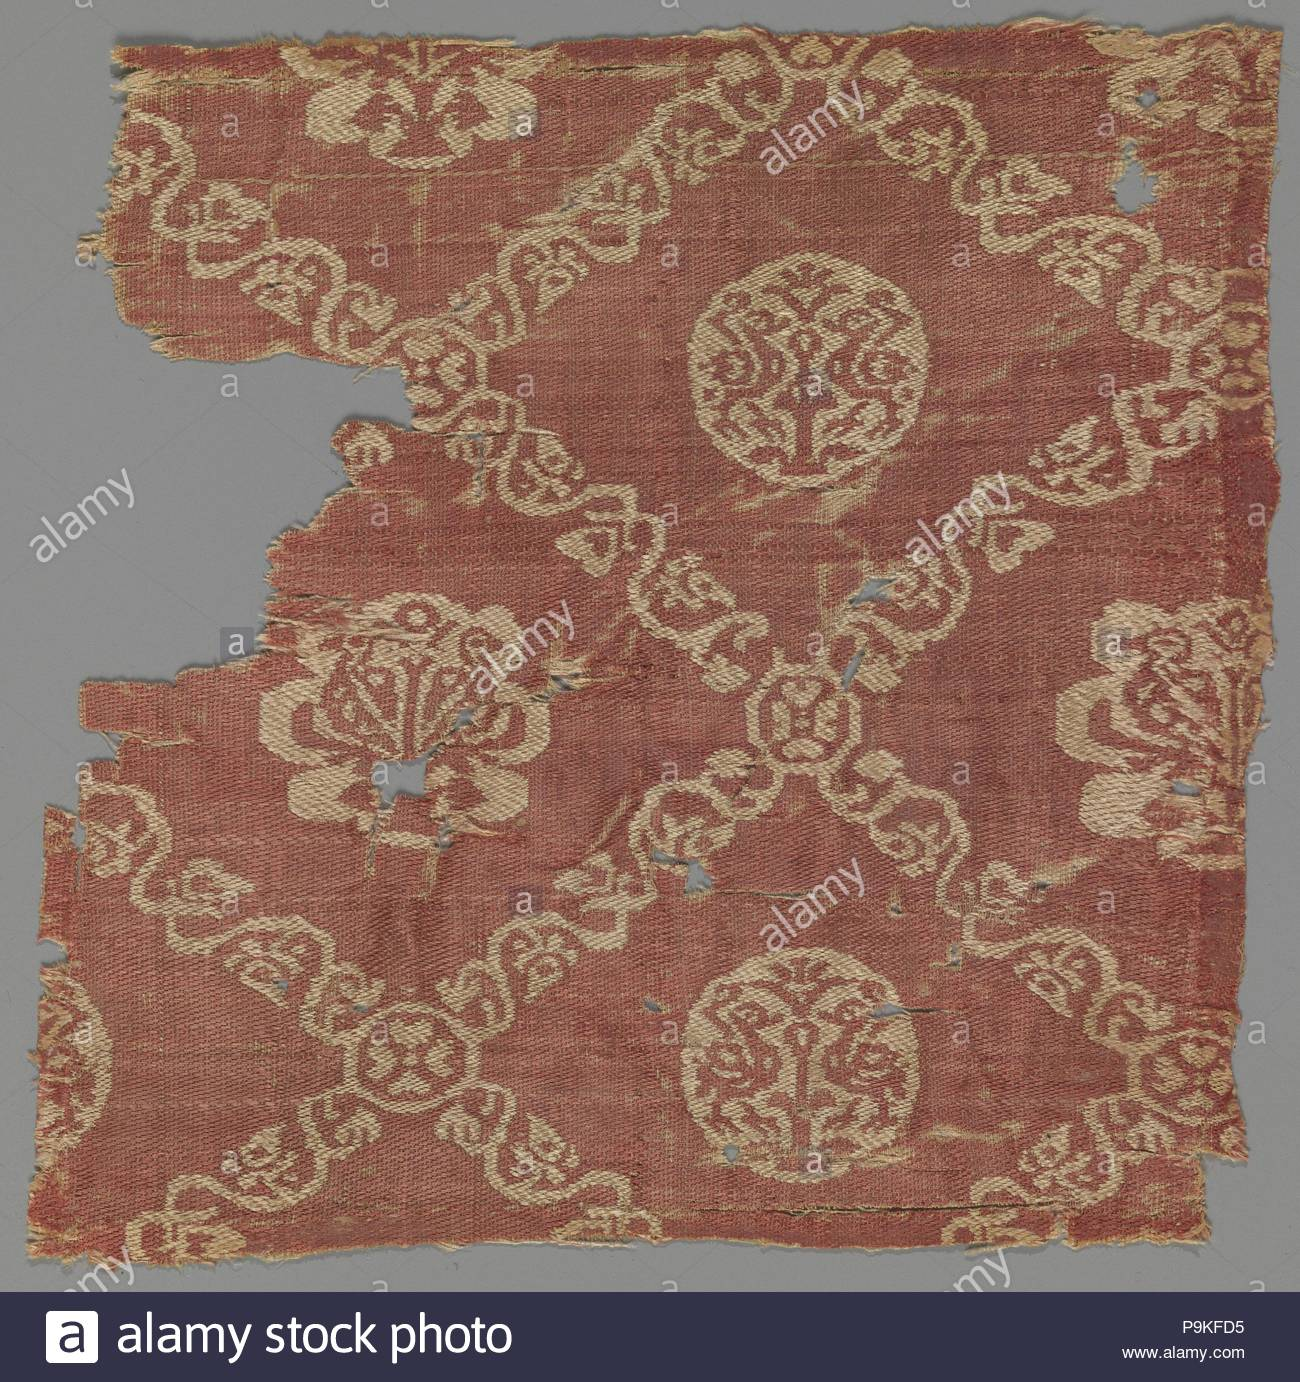 Vine Lattice with Birds, 6th–9th century, Attributed to Egypt, possibly Akhmim (former Panopolis), Silk; samit, Textile: L. 6 1/8 in. (15.5 cm), Textiles-Woven, This two-toned silk fragment features circular and lobed medallions composed of pairs of birds. These medallions are framed within an overall lattice pattern composed of abstracted vines, scrolls, and leaves. - Stock Image